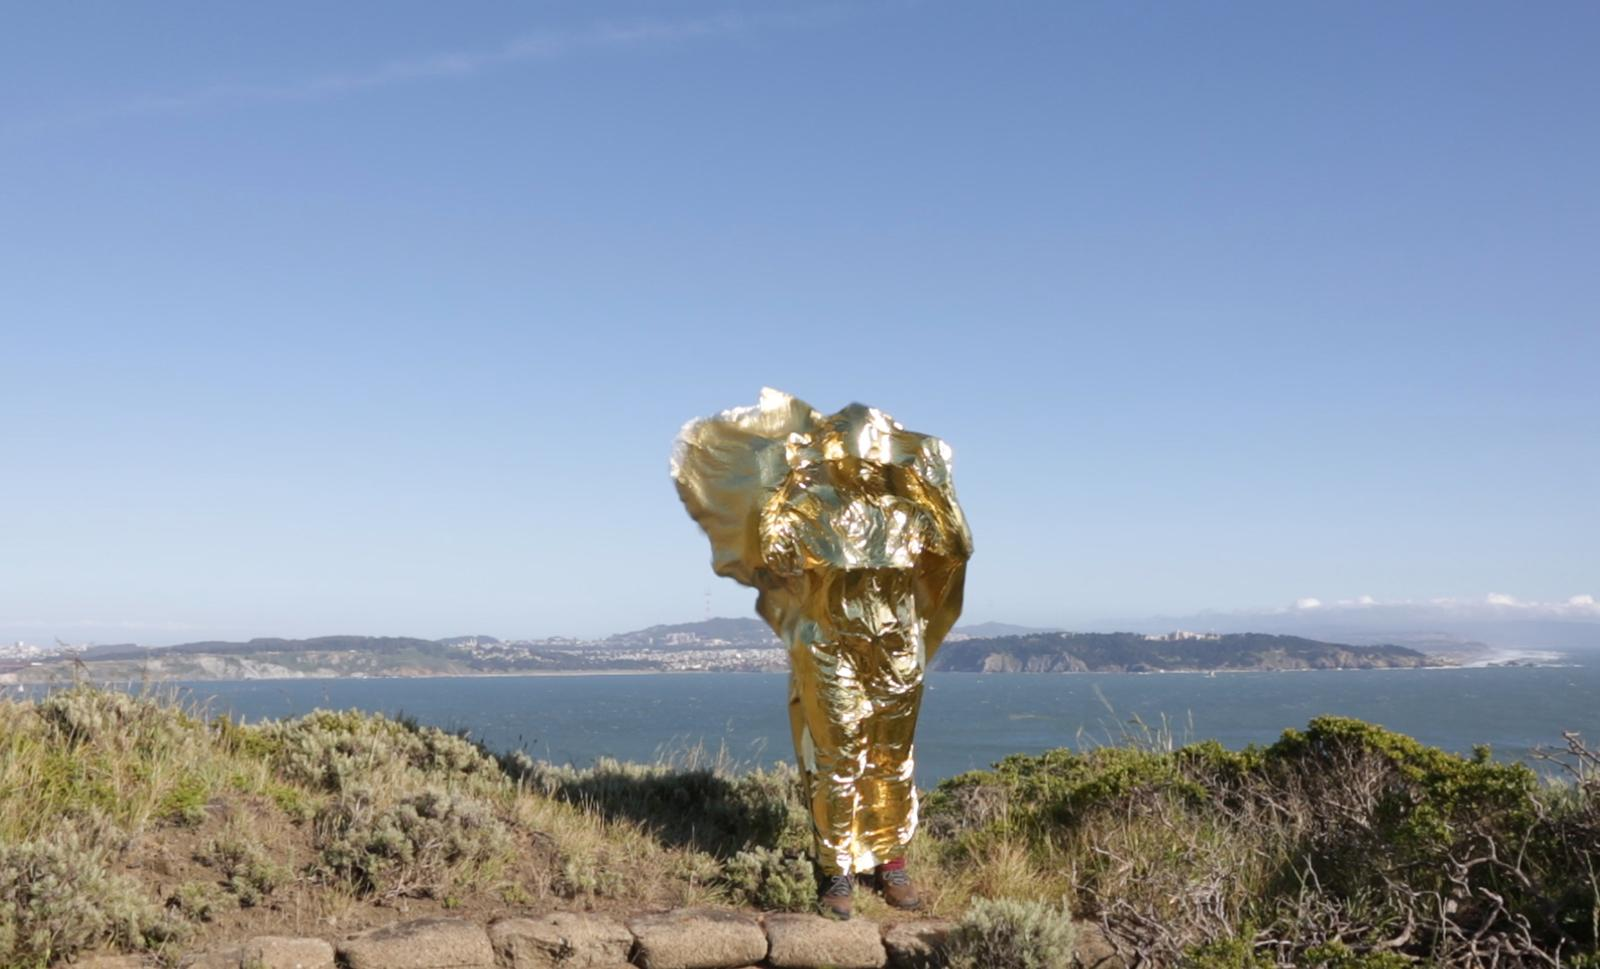 A figure holding up a gold emergency blanket, covering the whole body, stands on a hill overlooking the water